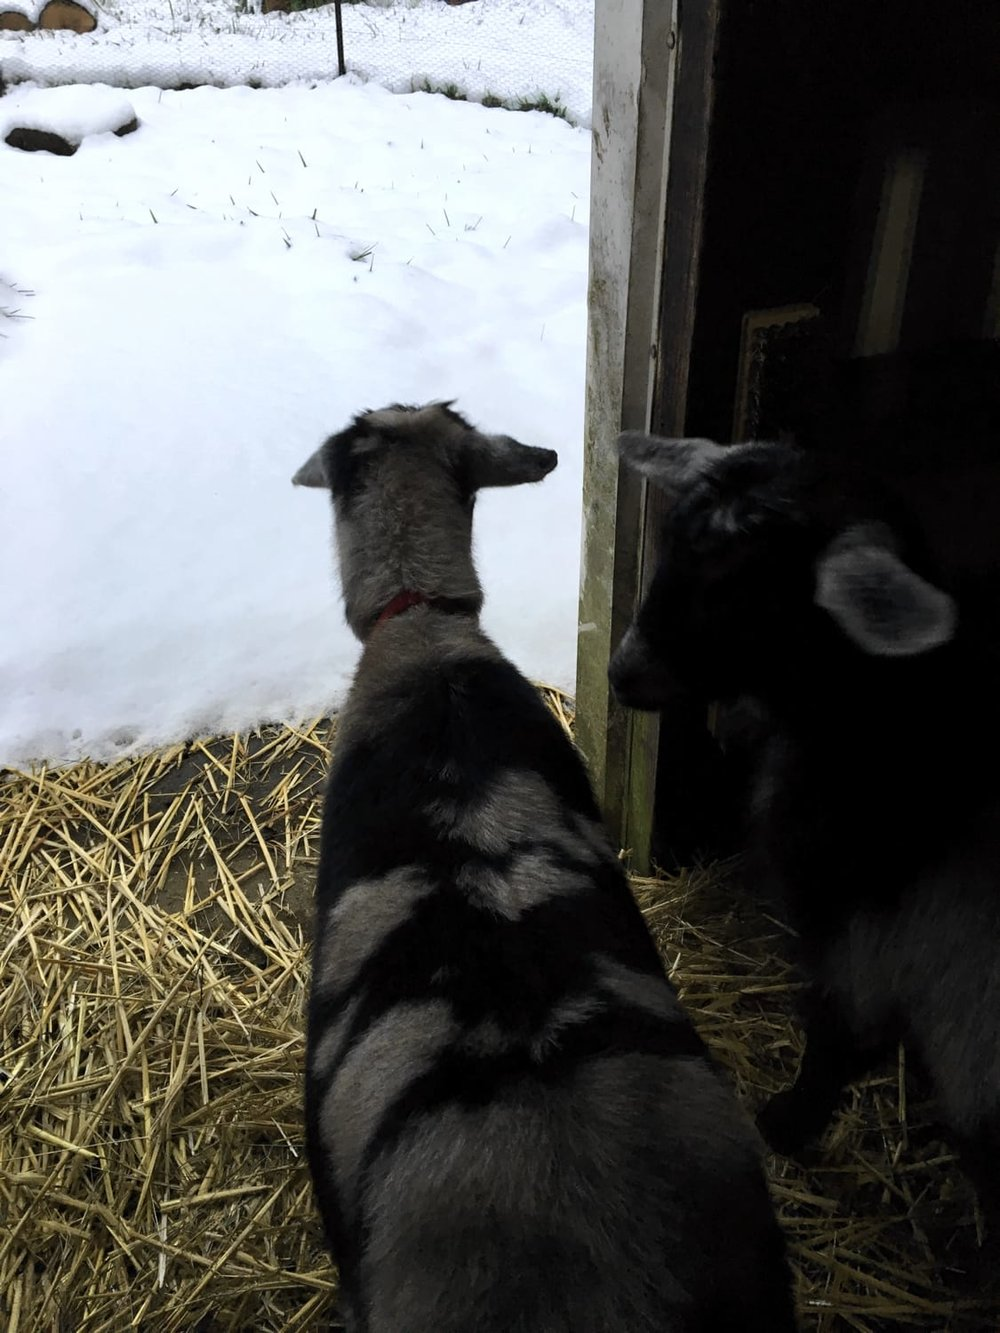 Our goats in their stall seeing snow for the first time.